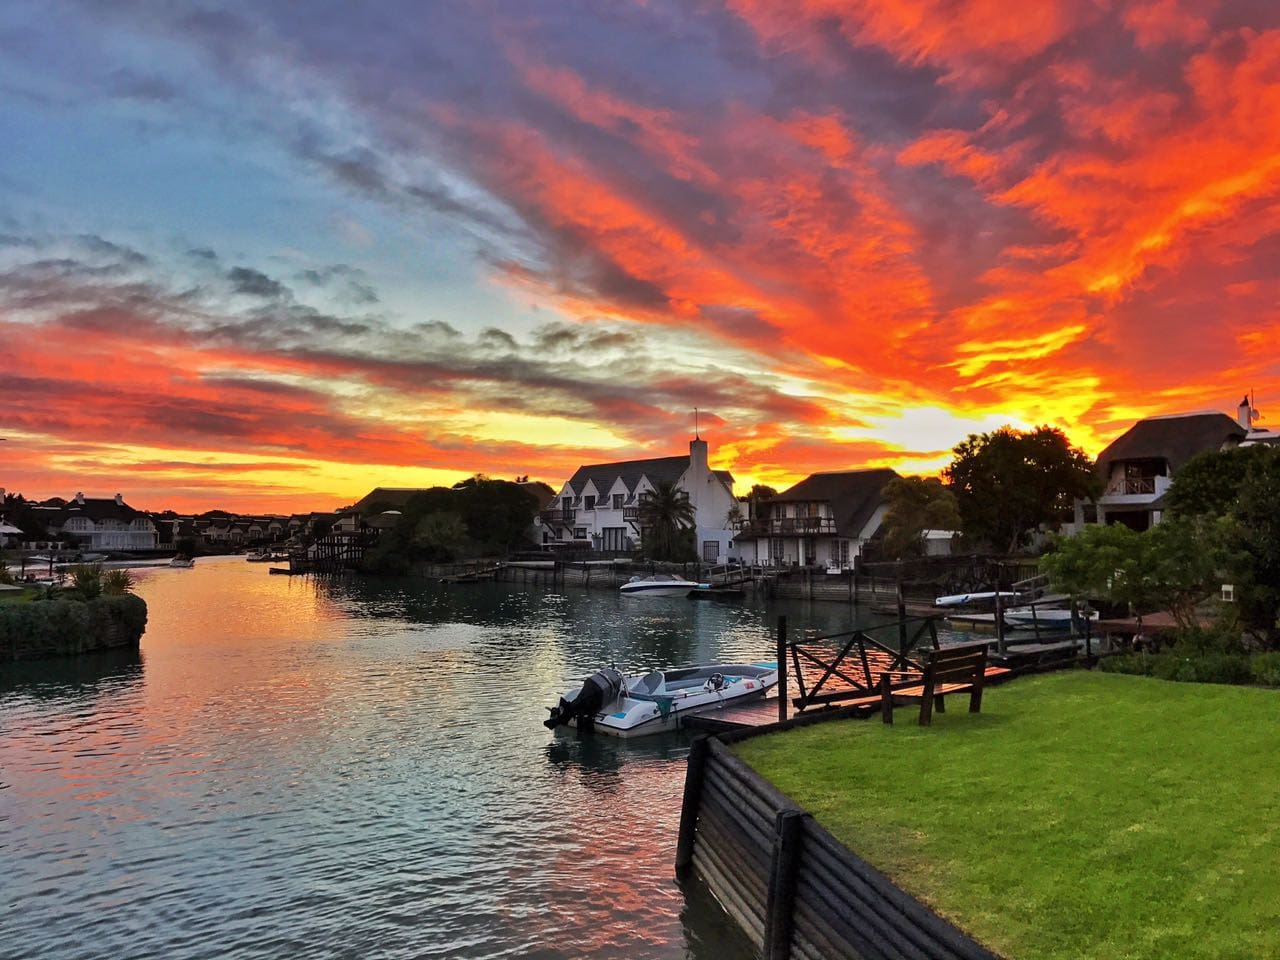 Spectacular sunset over the canal